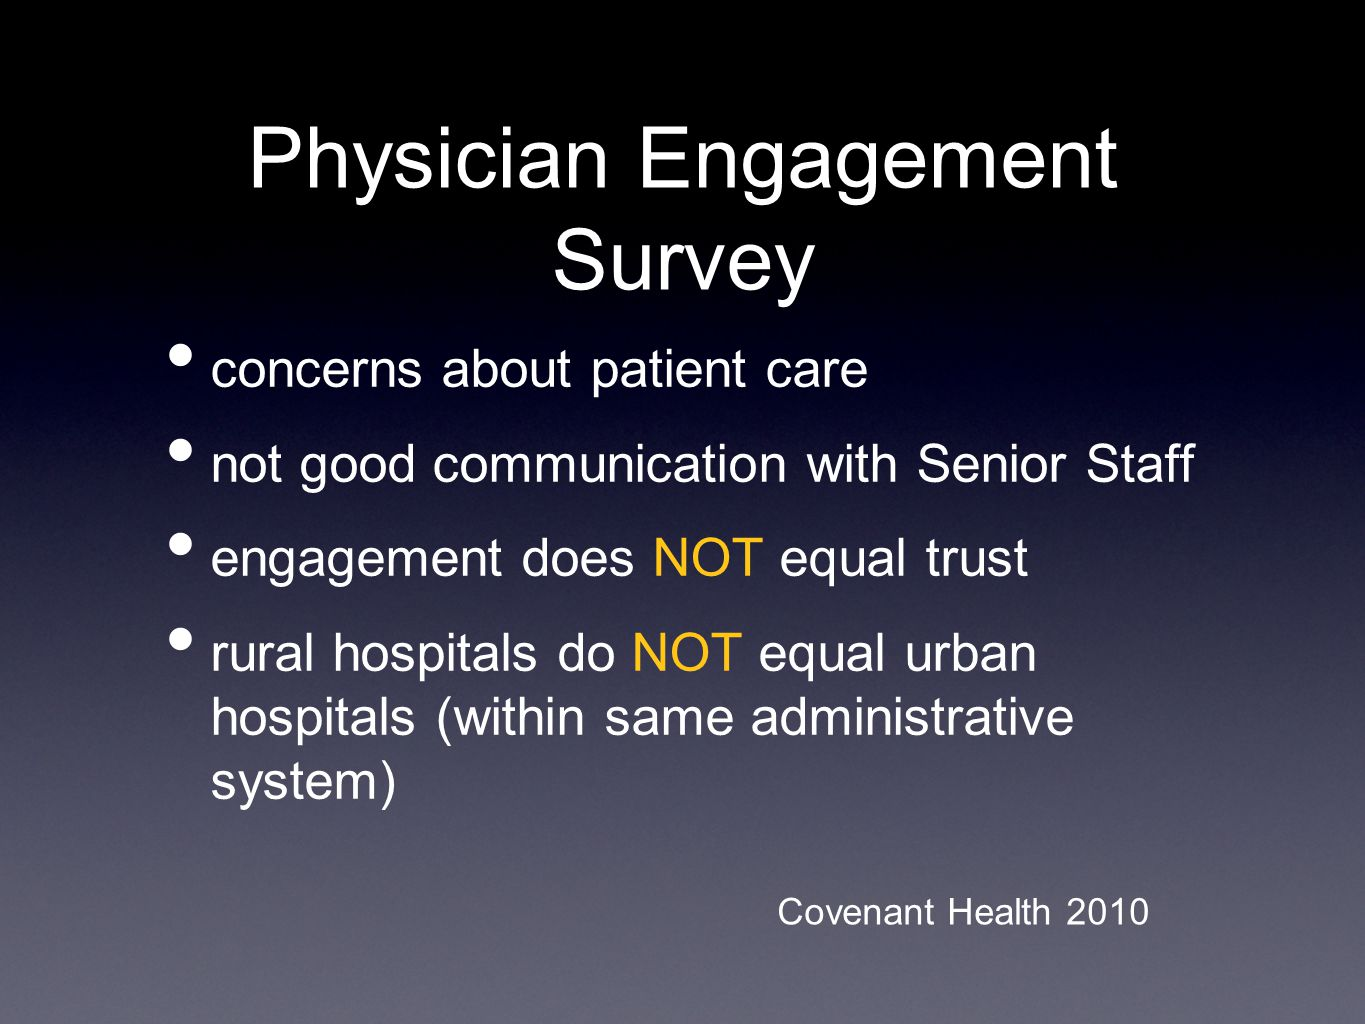 Physician Engagement Survey concerns about patient care not good communication with Senior Staff engagement does NOT equal trust rural hospitals do NOT equal urban hospitals (within same administrative system) Covenant Health 2010